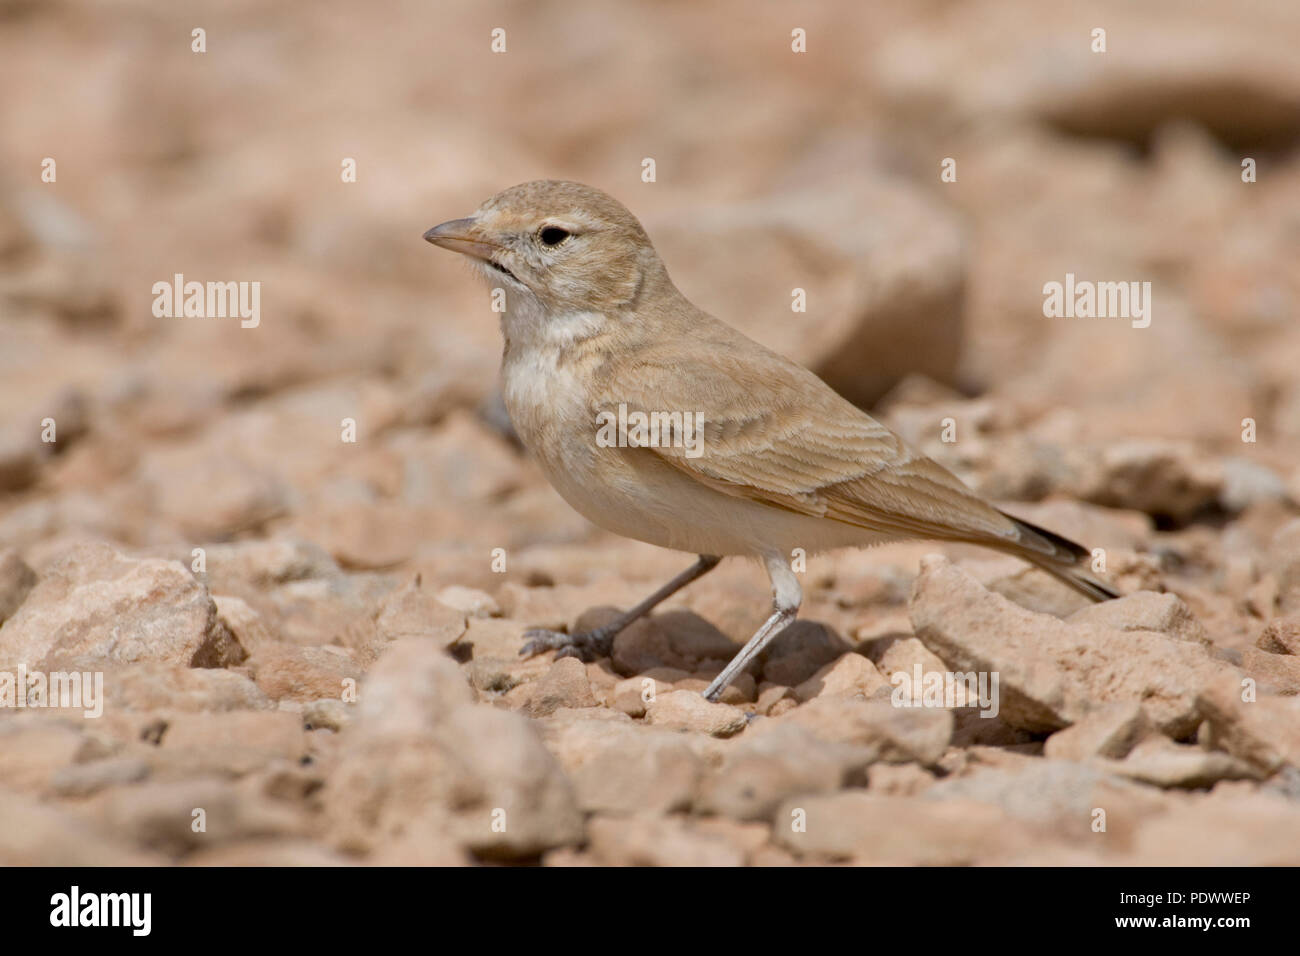 Bar-tailed Desert Lark on a stone, side-view. - Stock Image